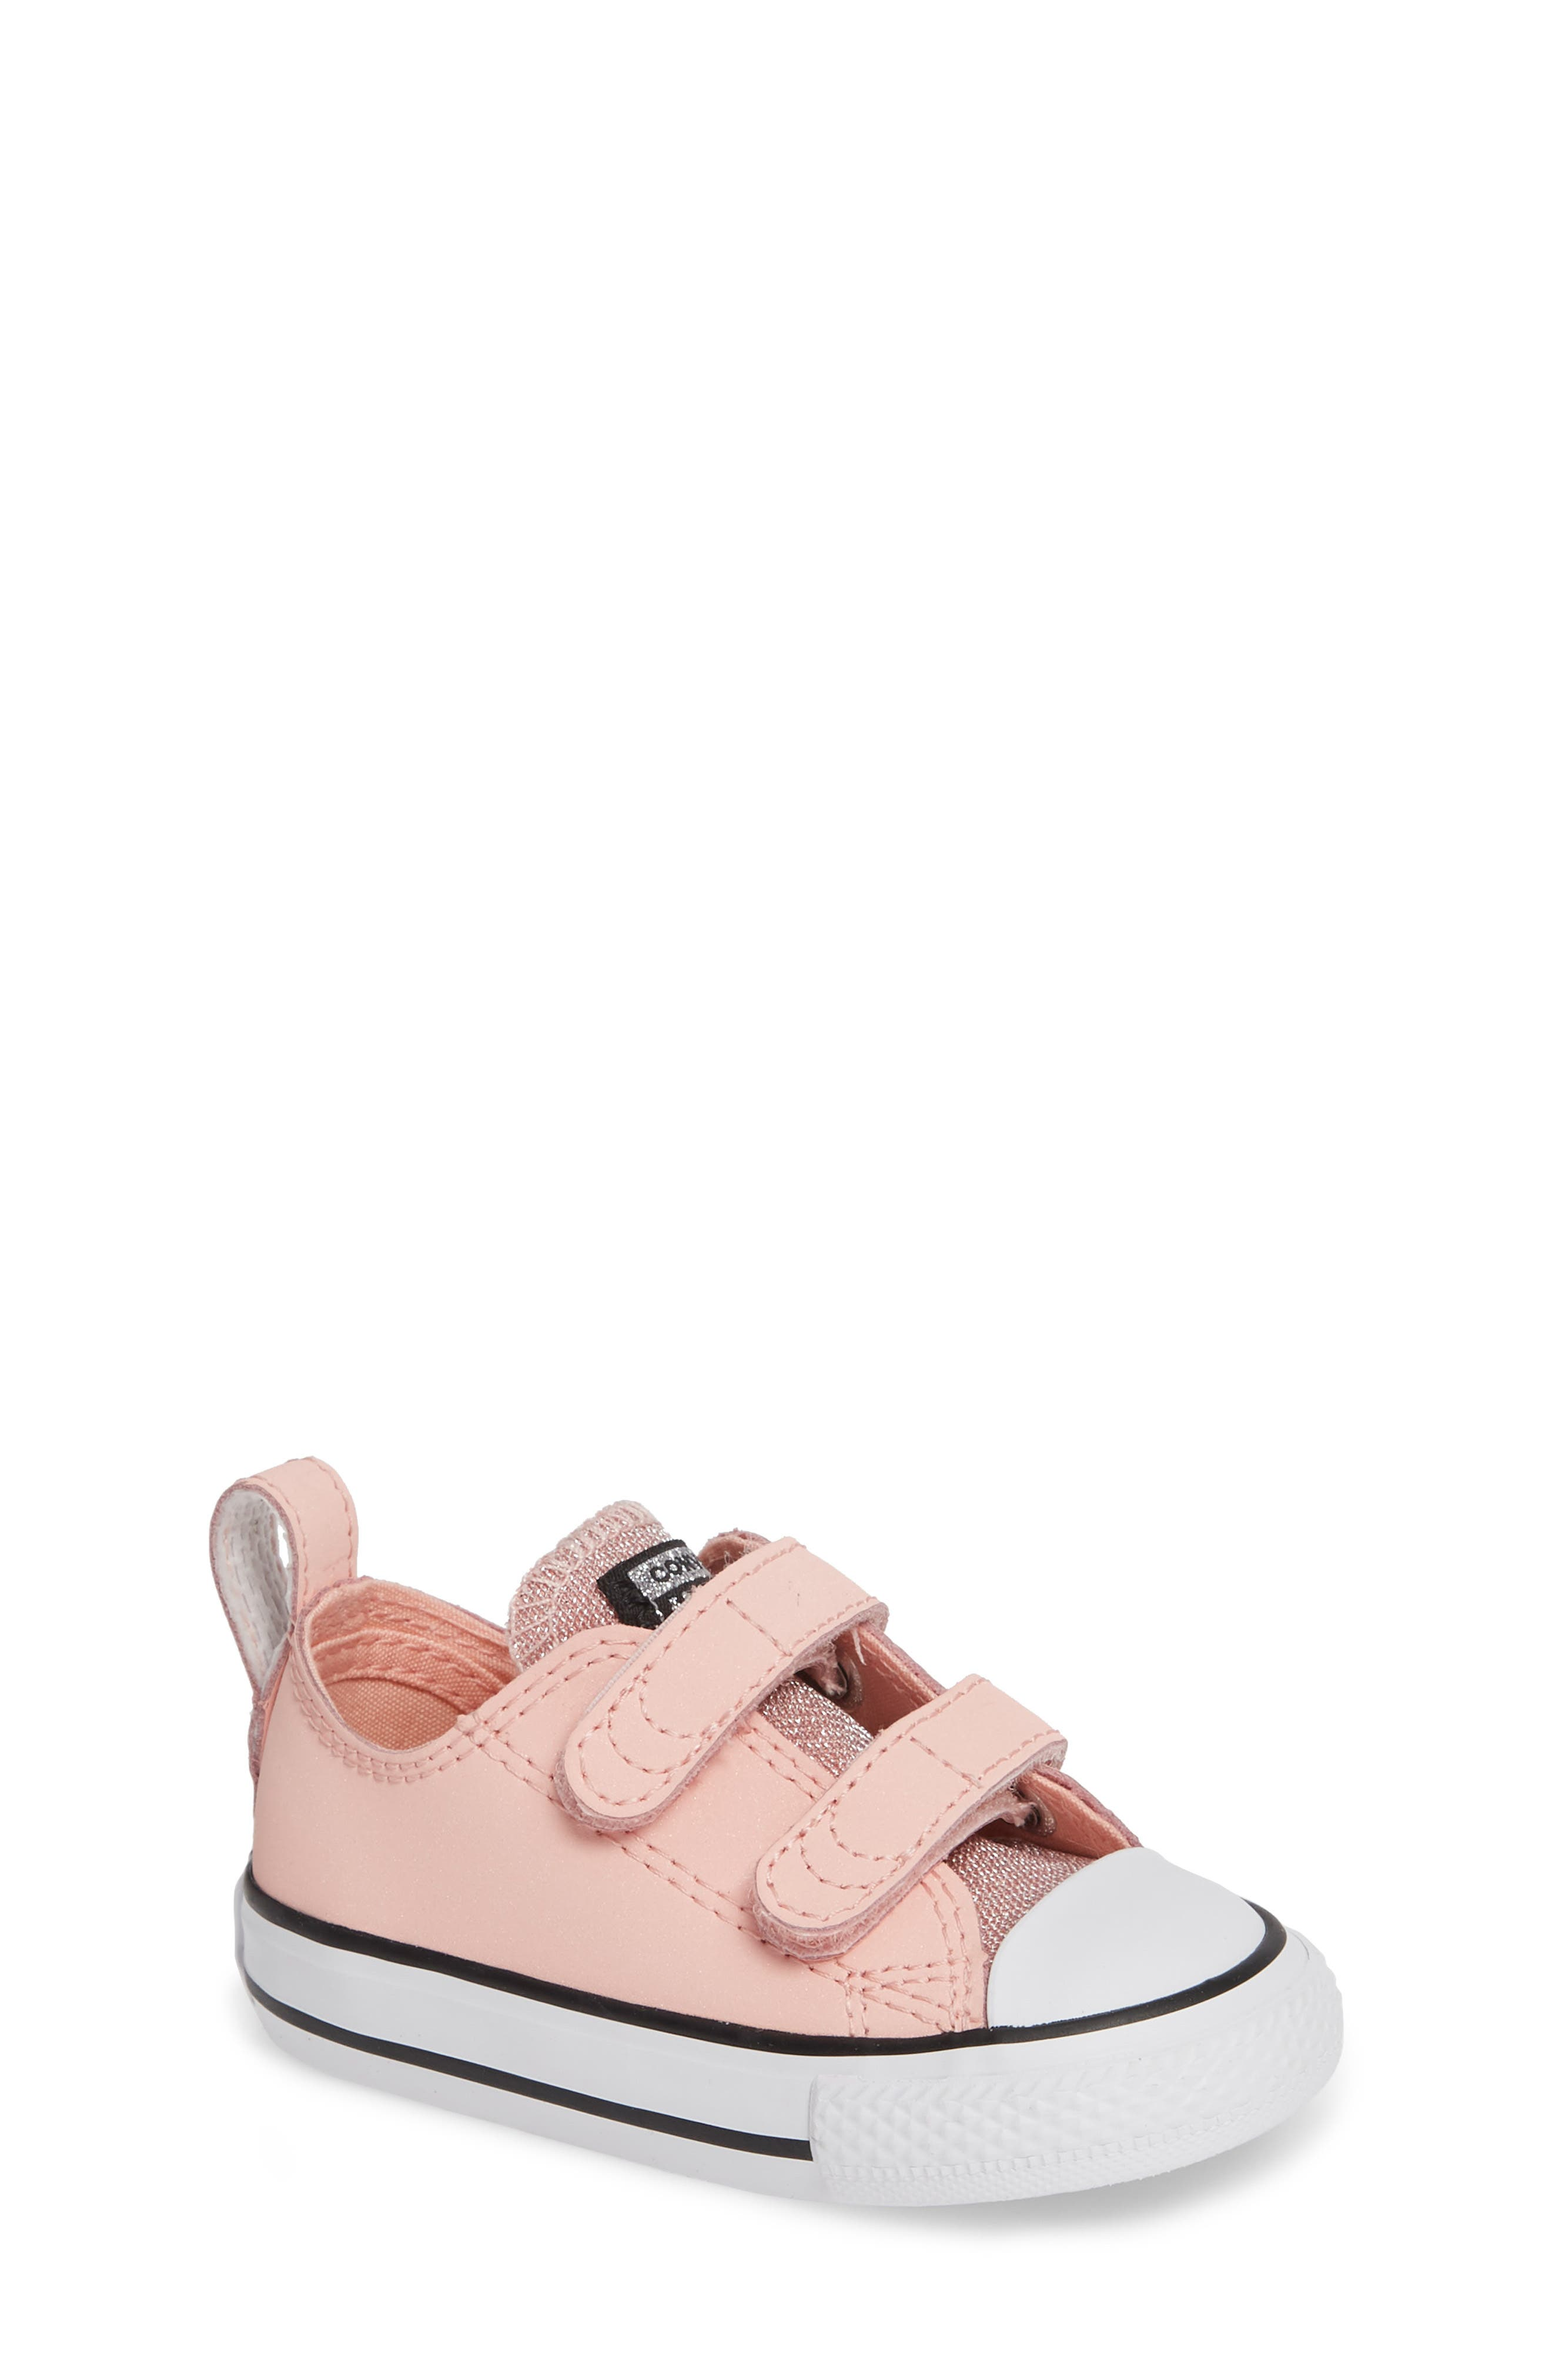 All Star<sup>®</sup> Seasonal Glitter Sneaker,                             Main thumbnail 1, color,                             STORM PINK